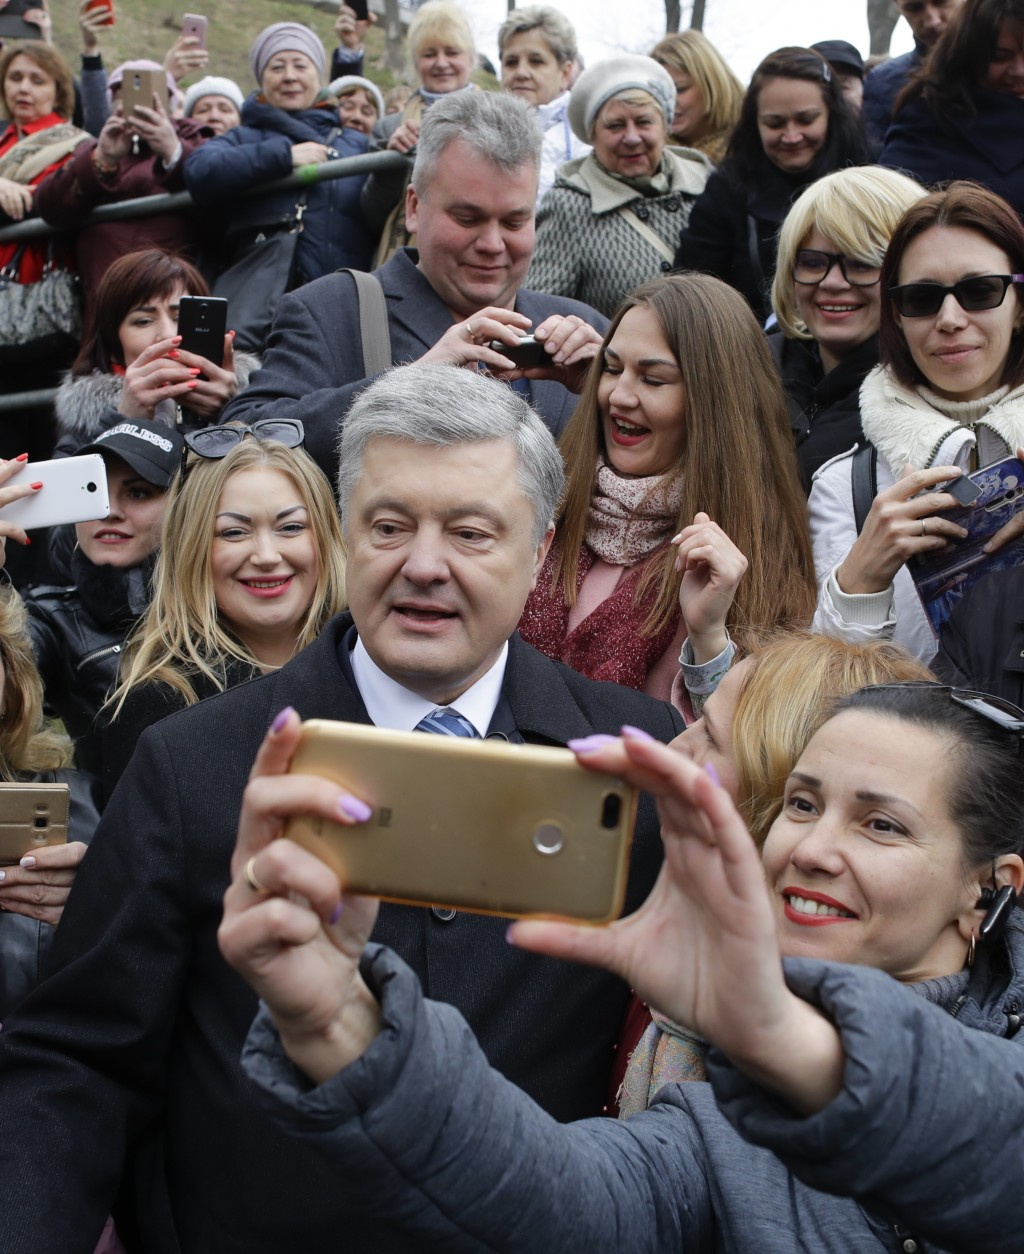 Ukrainian President Petro Poroshenko, center, poses for a selfie with a supporter after a public prayer ahead of Sunday's presidential election at the